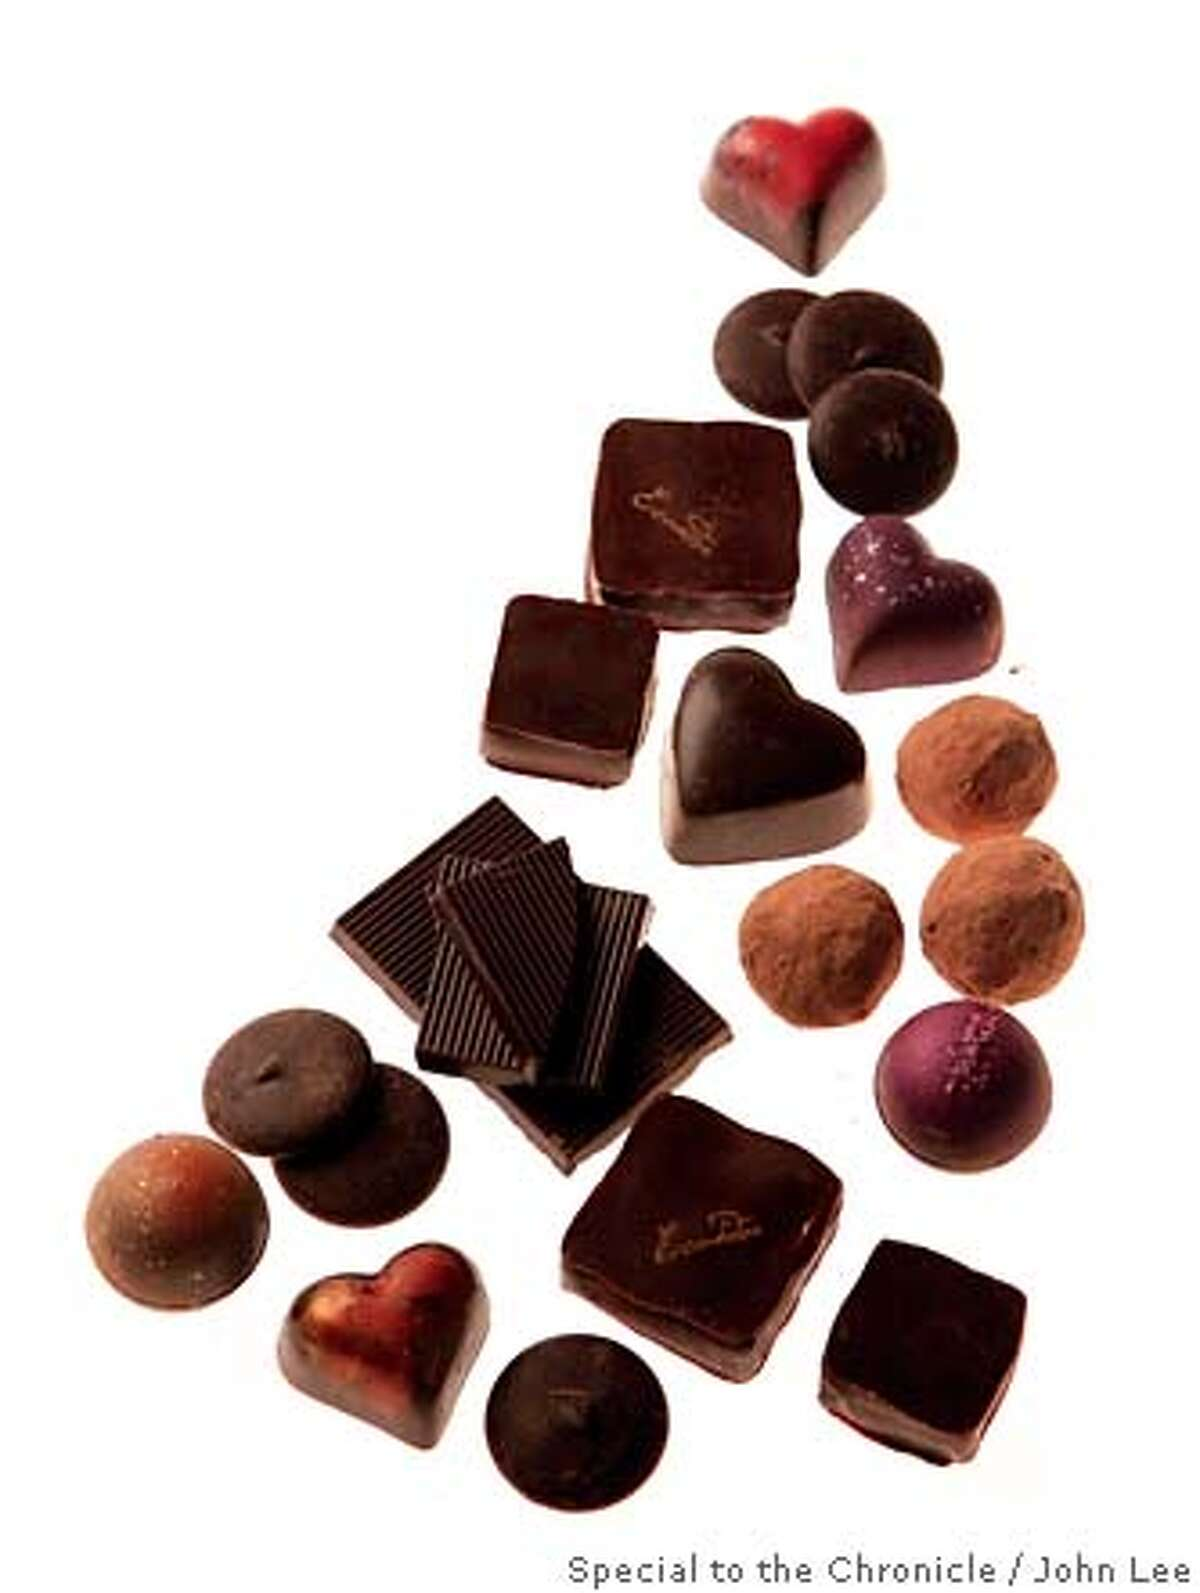 CHOCOLATE09_PAIR_COVER_01JOHNLEE.JPG For Ellie Winter. Chocolates and dessert wines, etc... Cover. By JOHN LEE/SPECIAL TO THE CHRONICLE